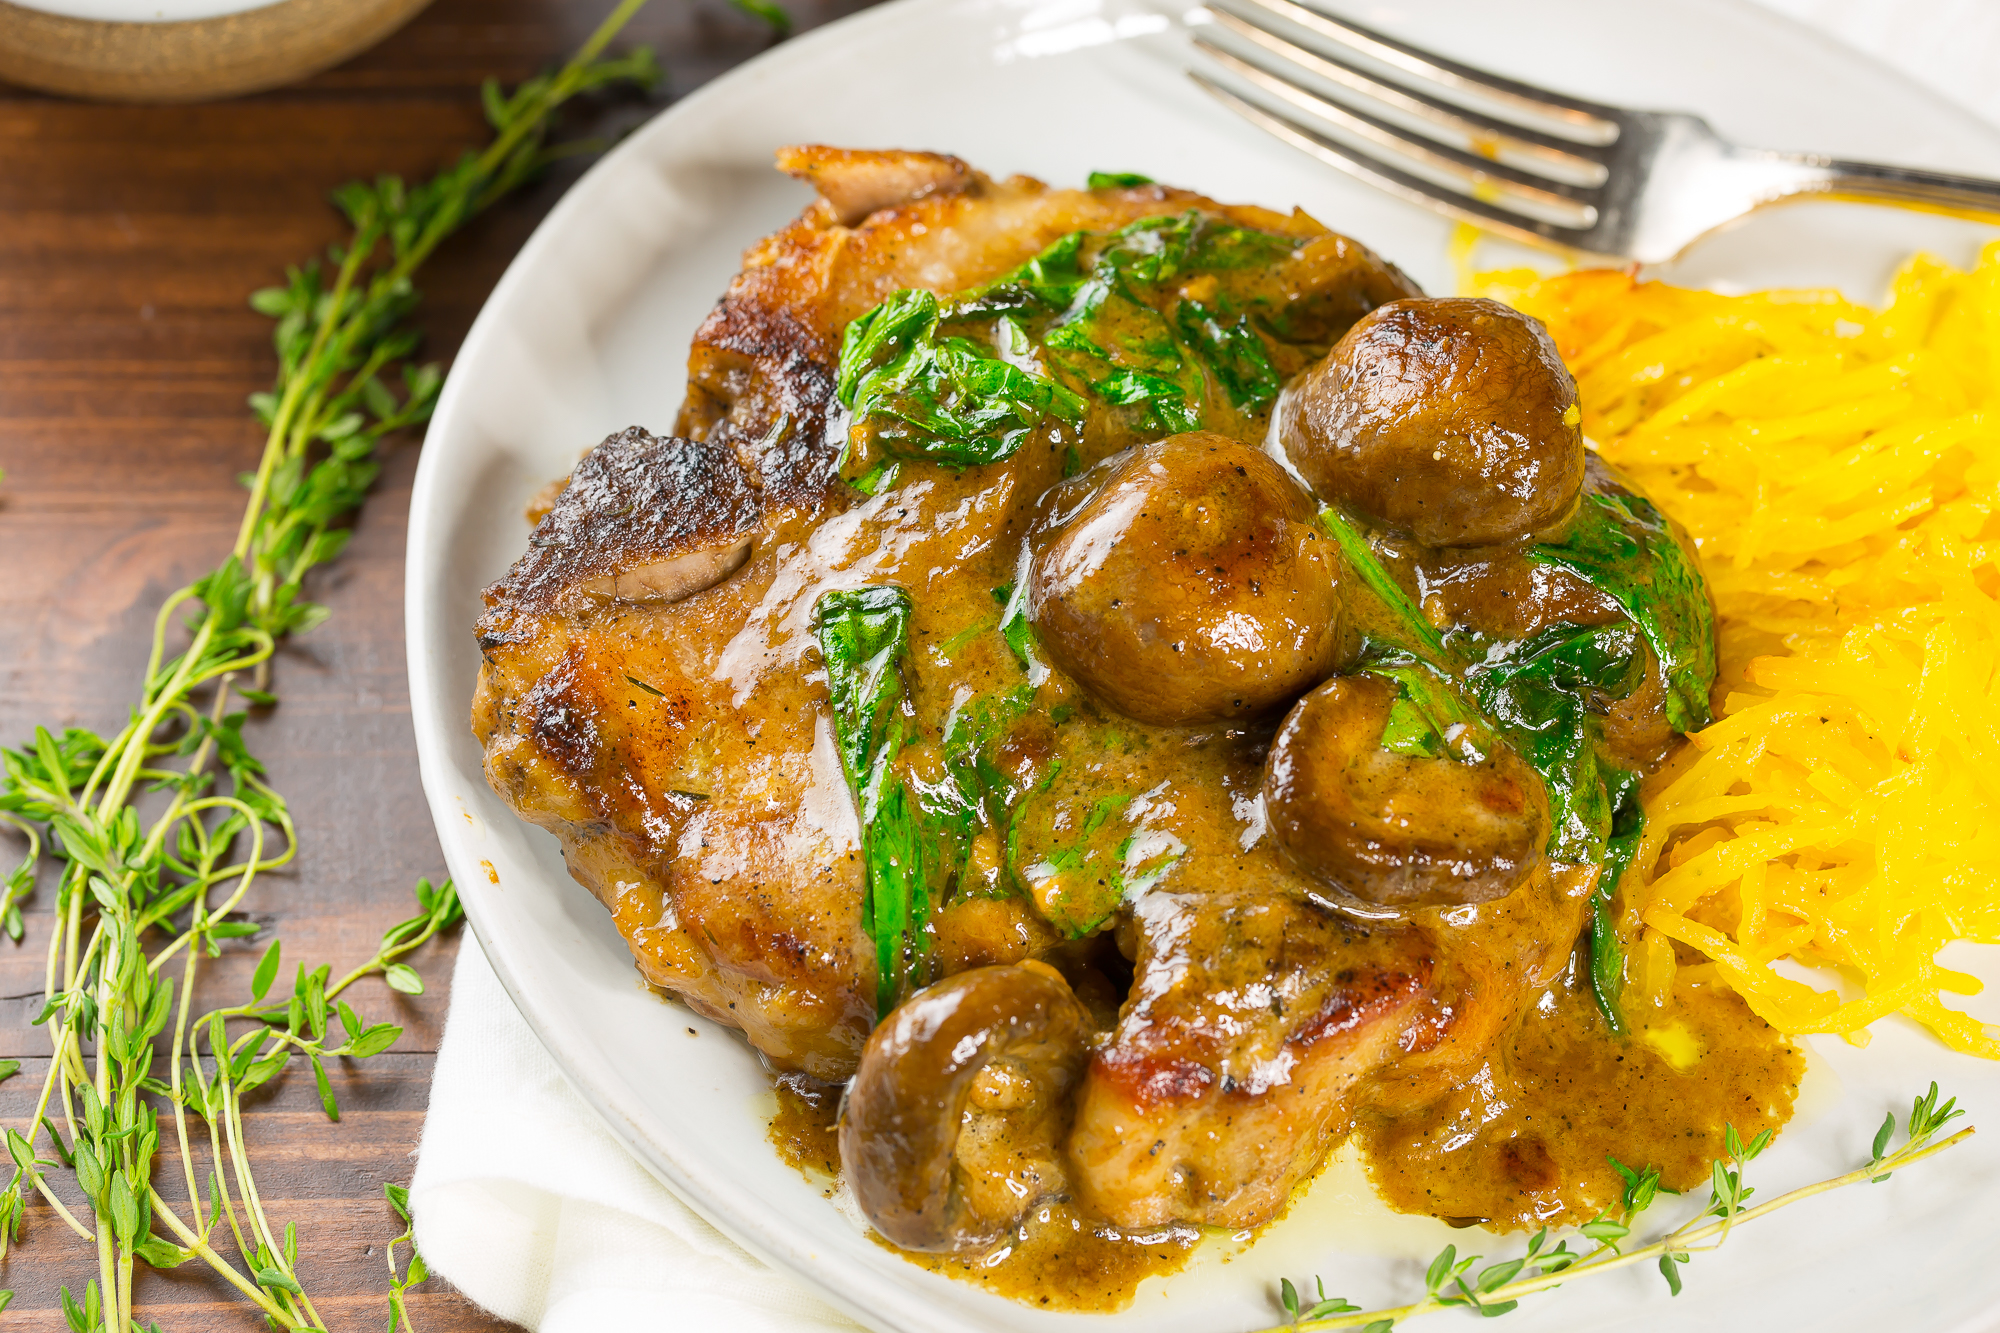 Pork chops with mushroom gravy and spaghetti squash